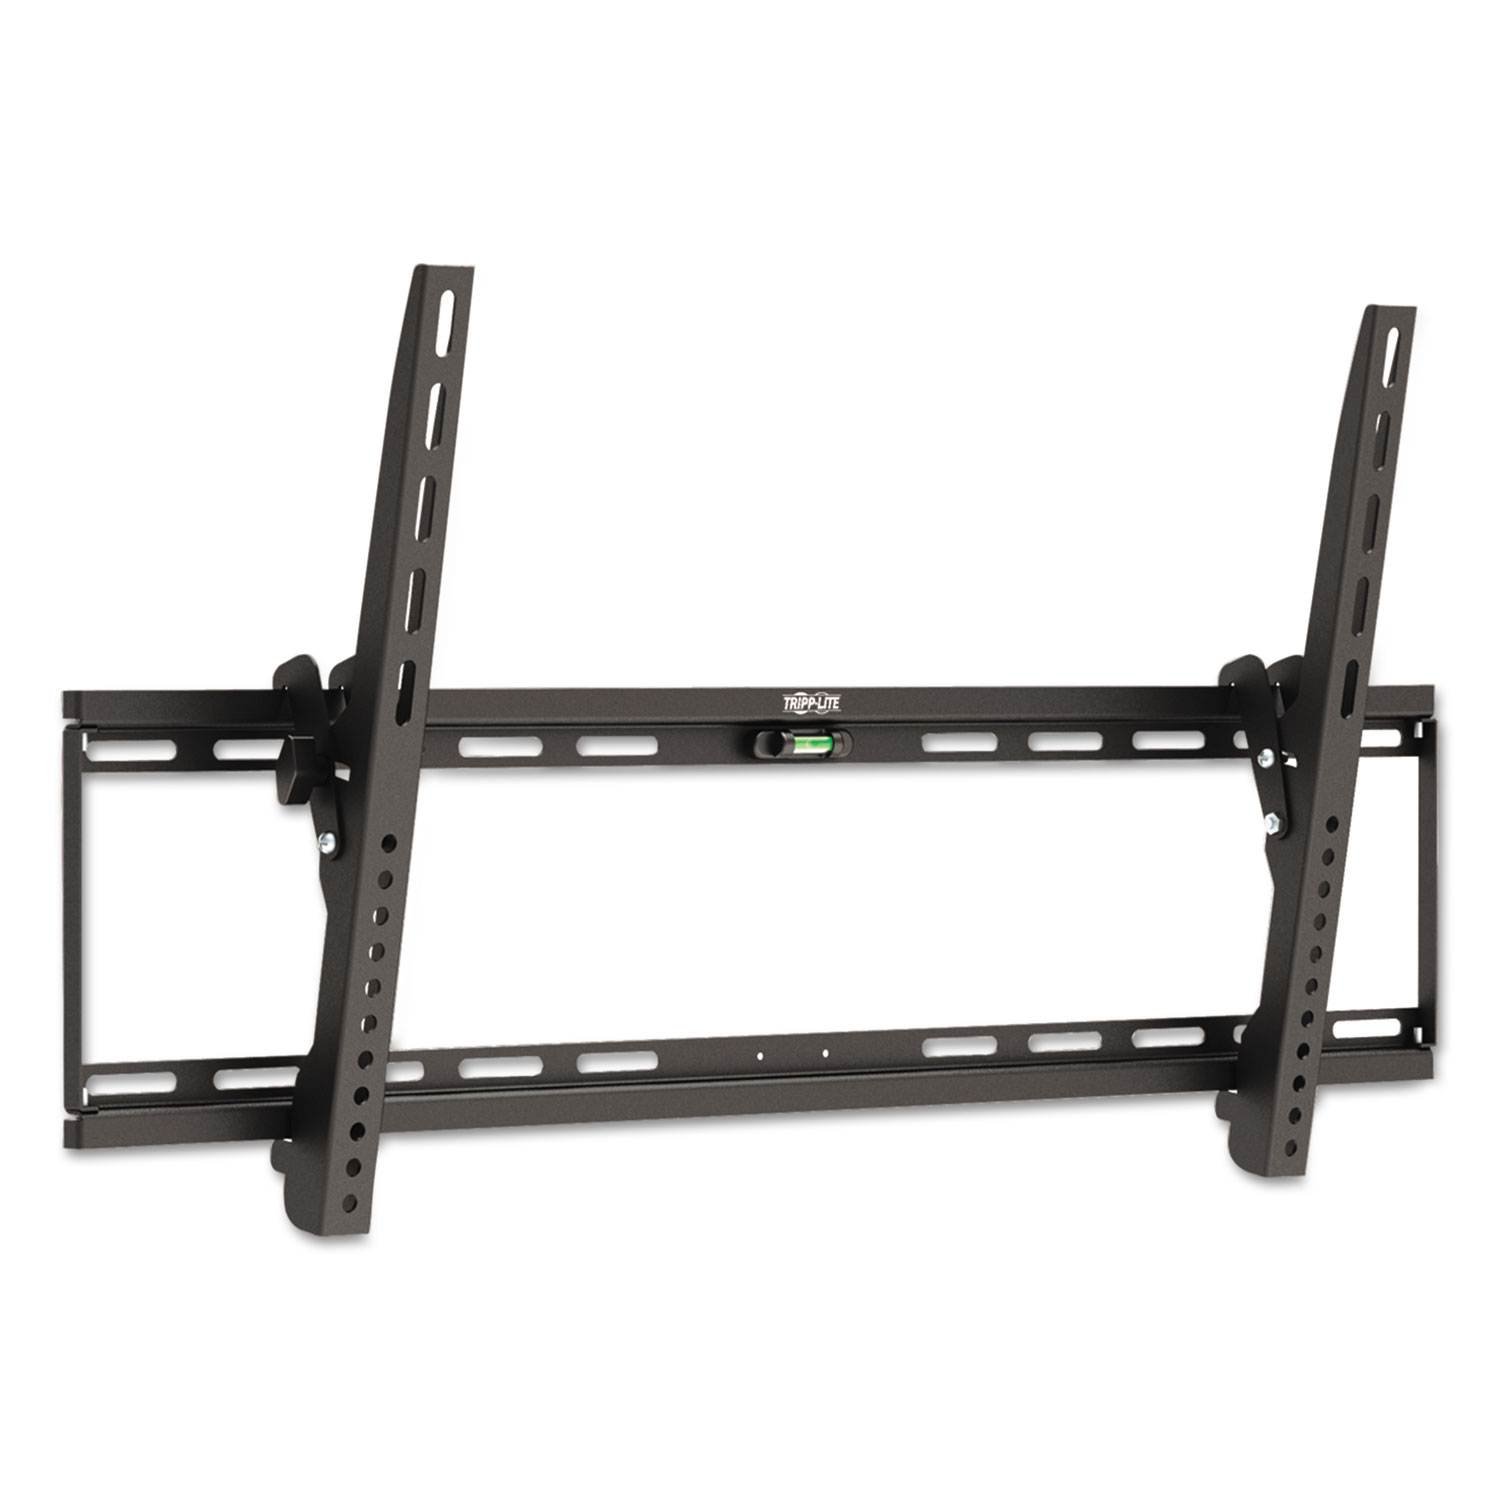 """Tilt Wall Mount for 37"""" to 70"""" TVs/Monitors, up to 200 lbs"""